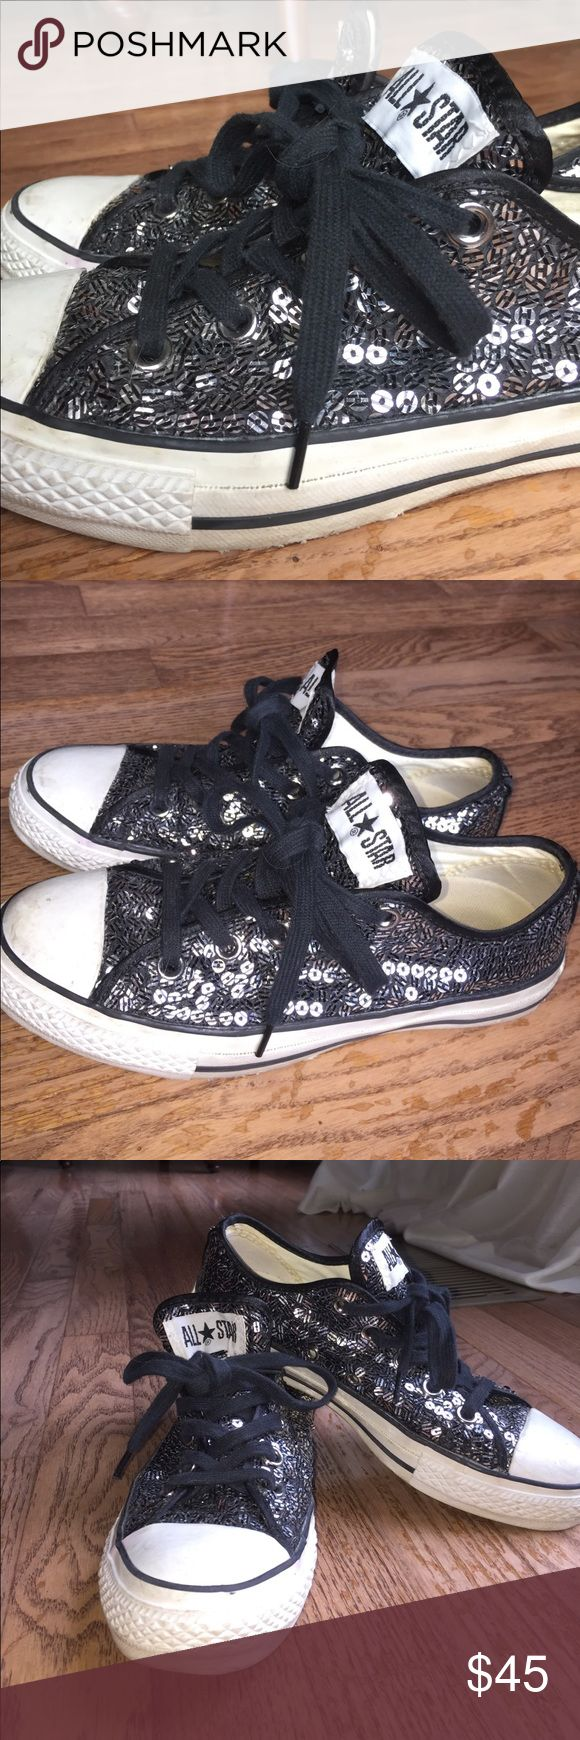 RARE Converse OX striped sequin sneakers These Converse are rare, limited edition and hard to find black and silver striped sequin. Bought in NYC. These shoes are used, and show some signs of wear, this includes: scuffs on the toes, a couple missing sequins, and the inner Converse logo is faded. I am open to all offers :) Converse Shoes Sneakers